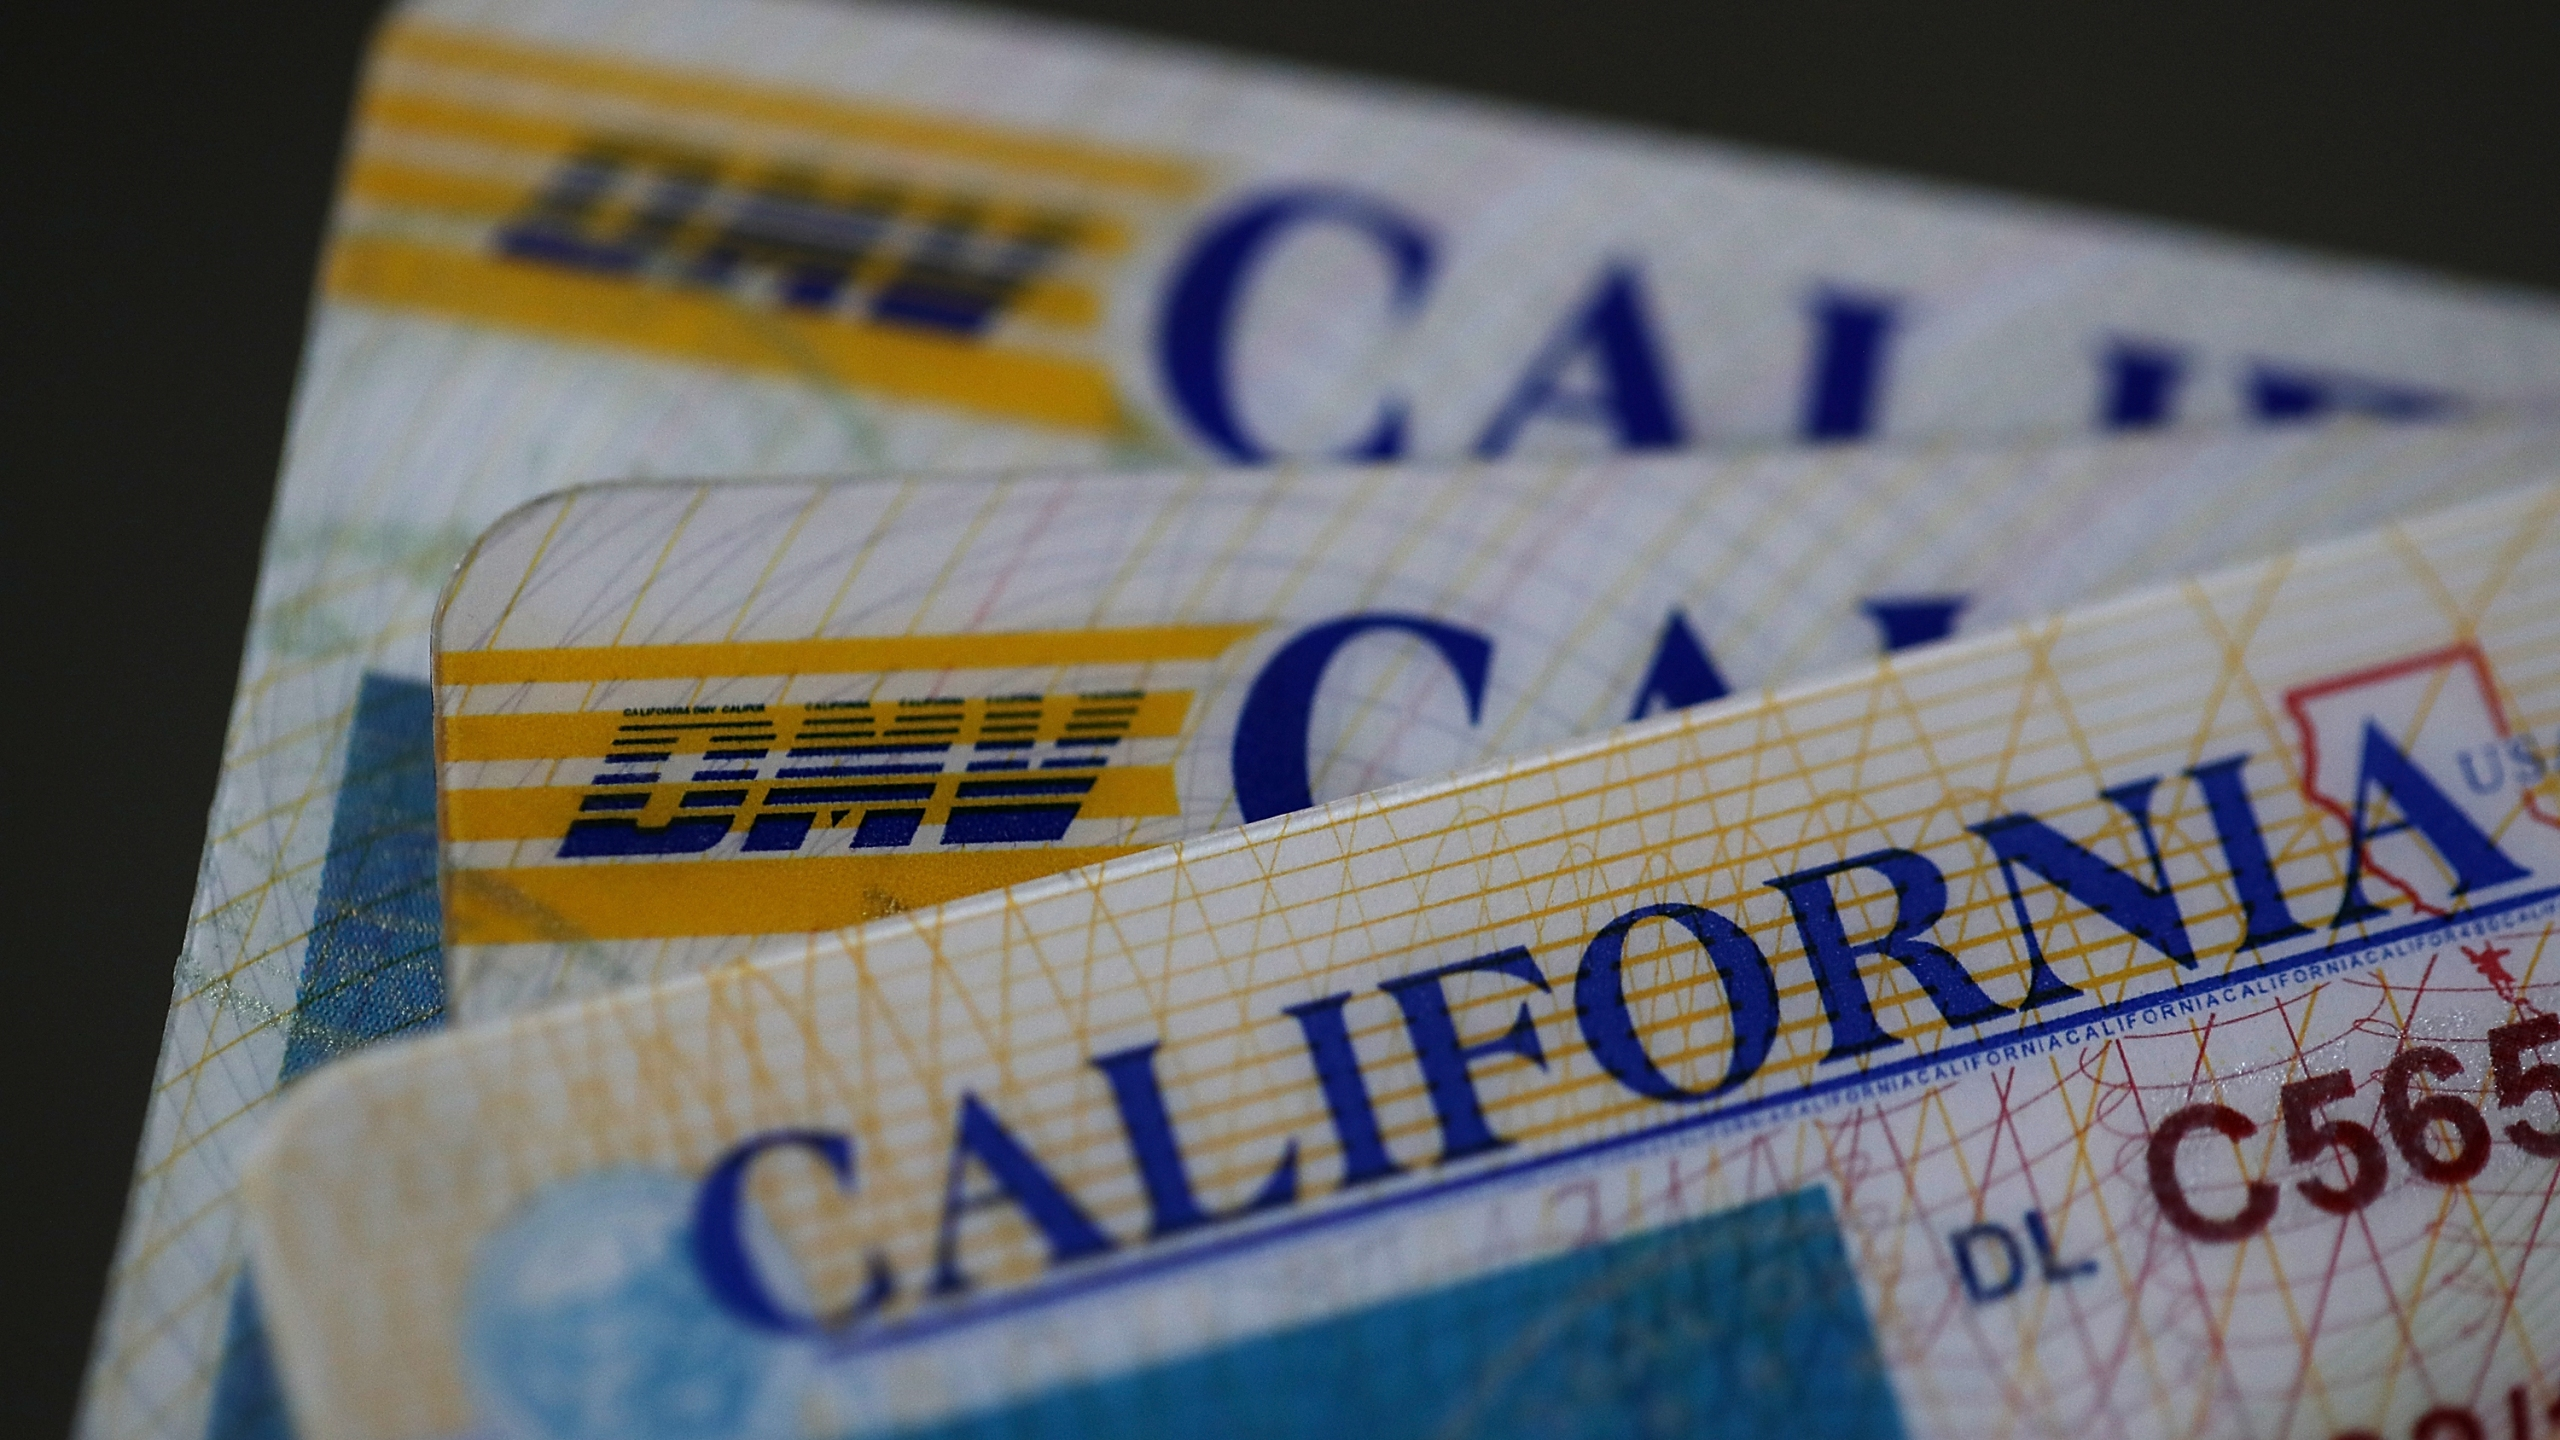 A stack of California Department of Motor Vehicles driver's licenses are seen on May 9, 2017, in San Anselmo, California. (Credit: Justin Sullivan/Getty Images)